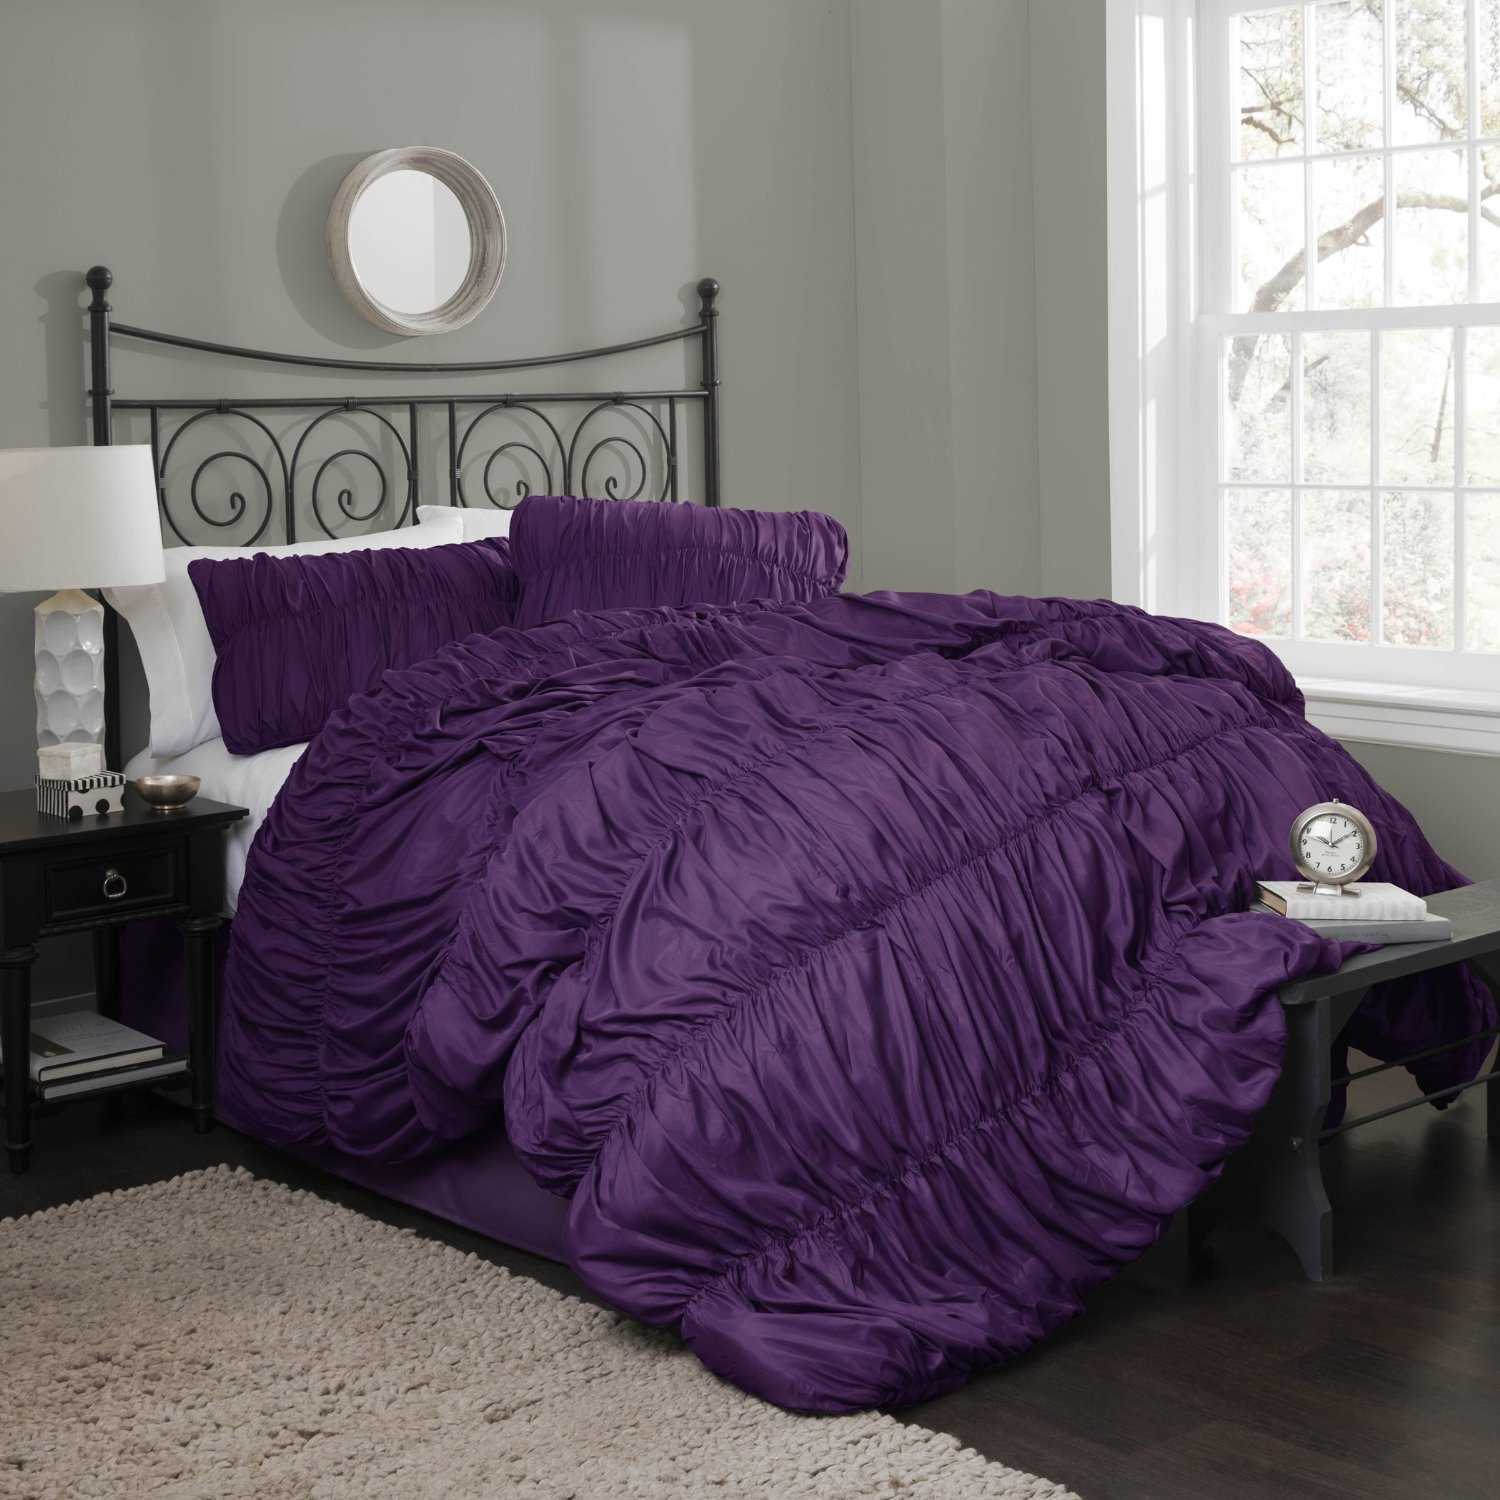 total fab ruched bedding and comforter sets. Black Bedroom Furniture Sets. Home Design Ideas